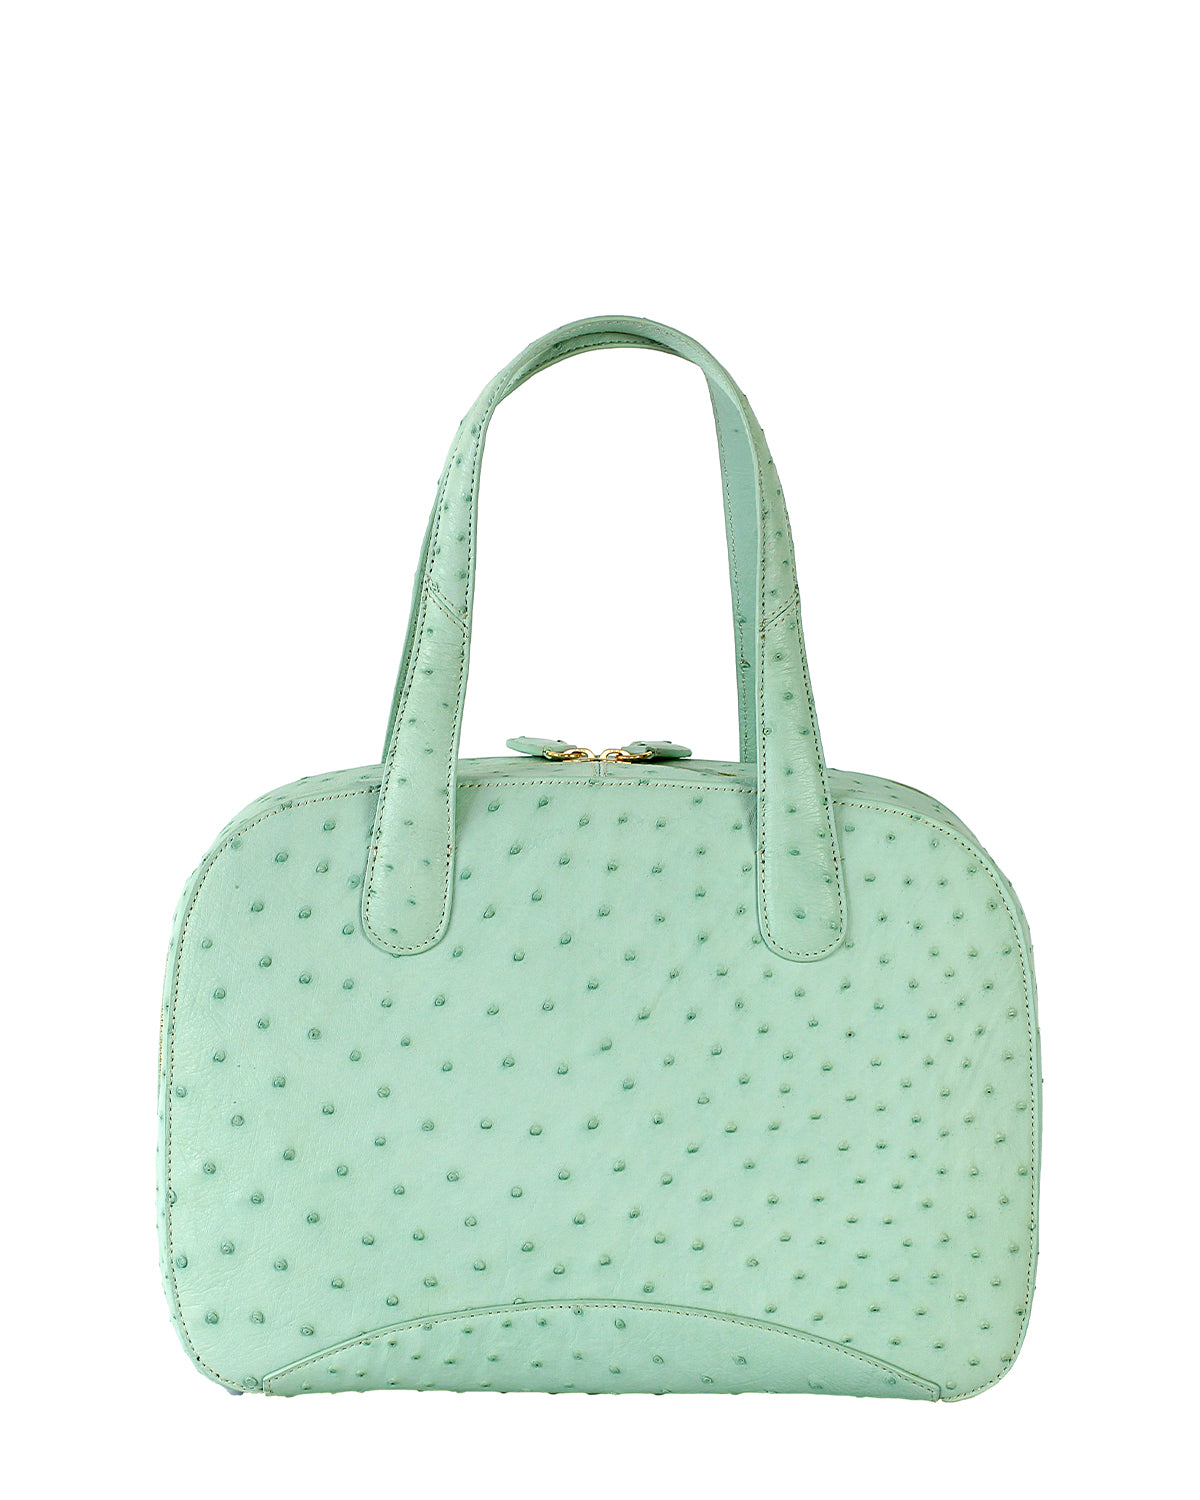 Yara Bashoor Charles Tote Handbag Seafoam Green Yellow Gold Back View